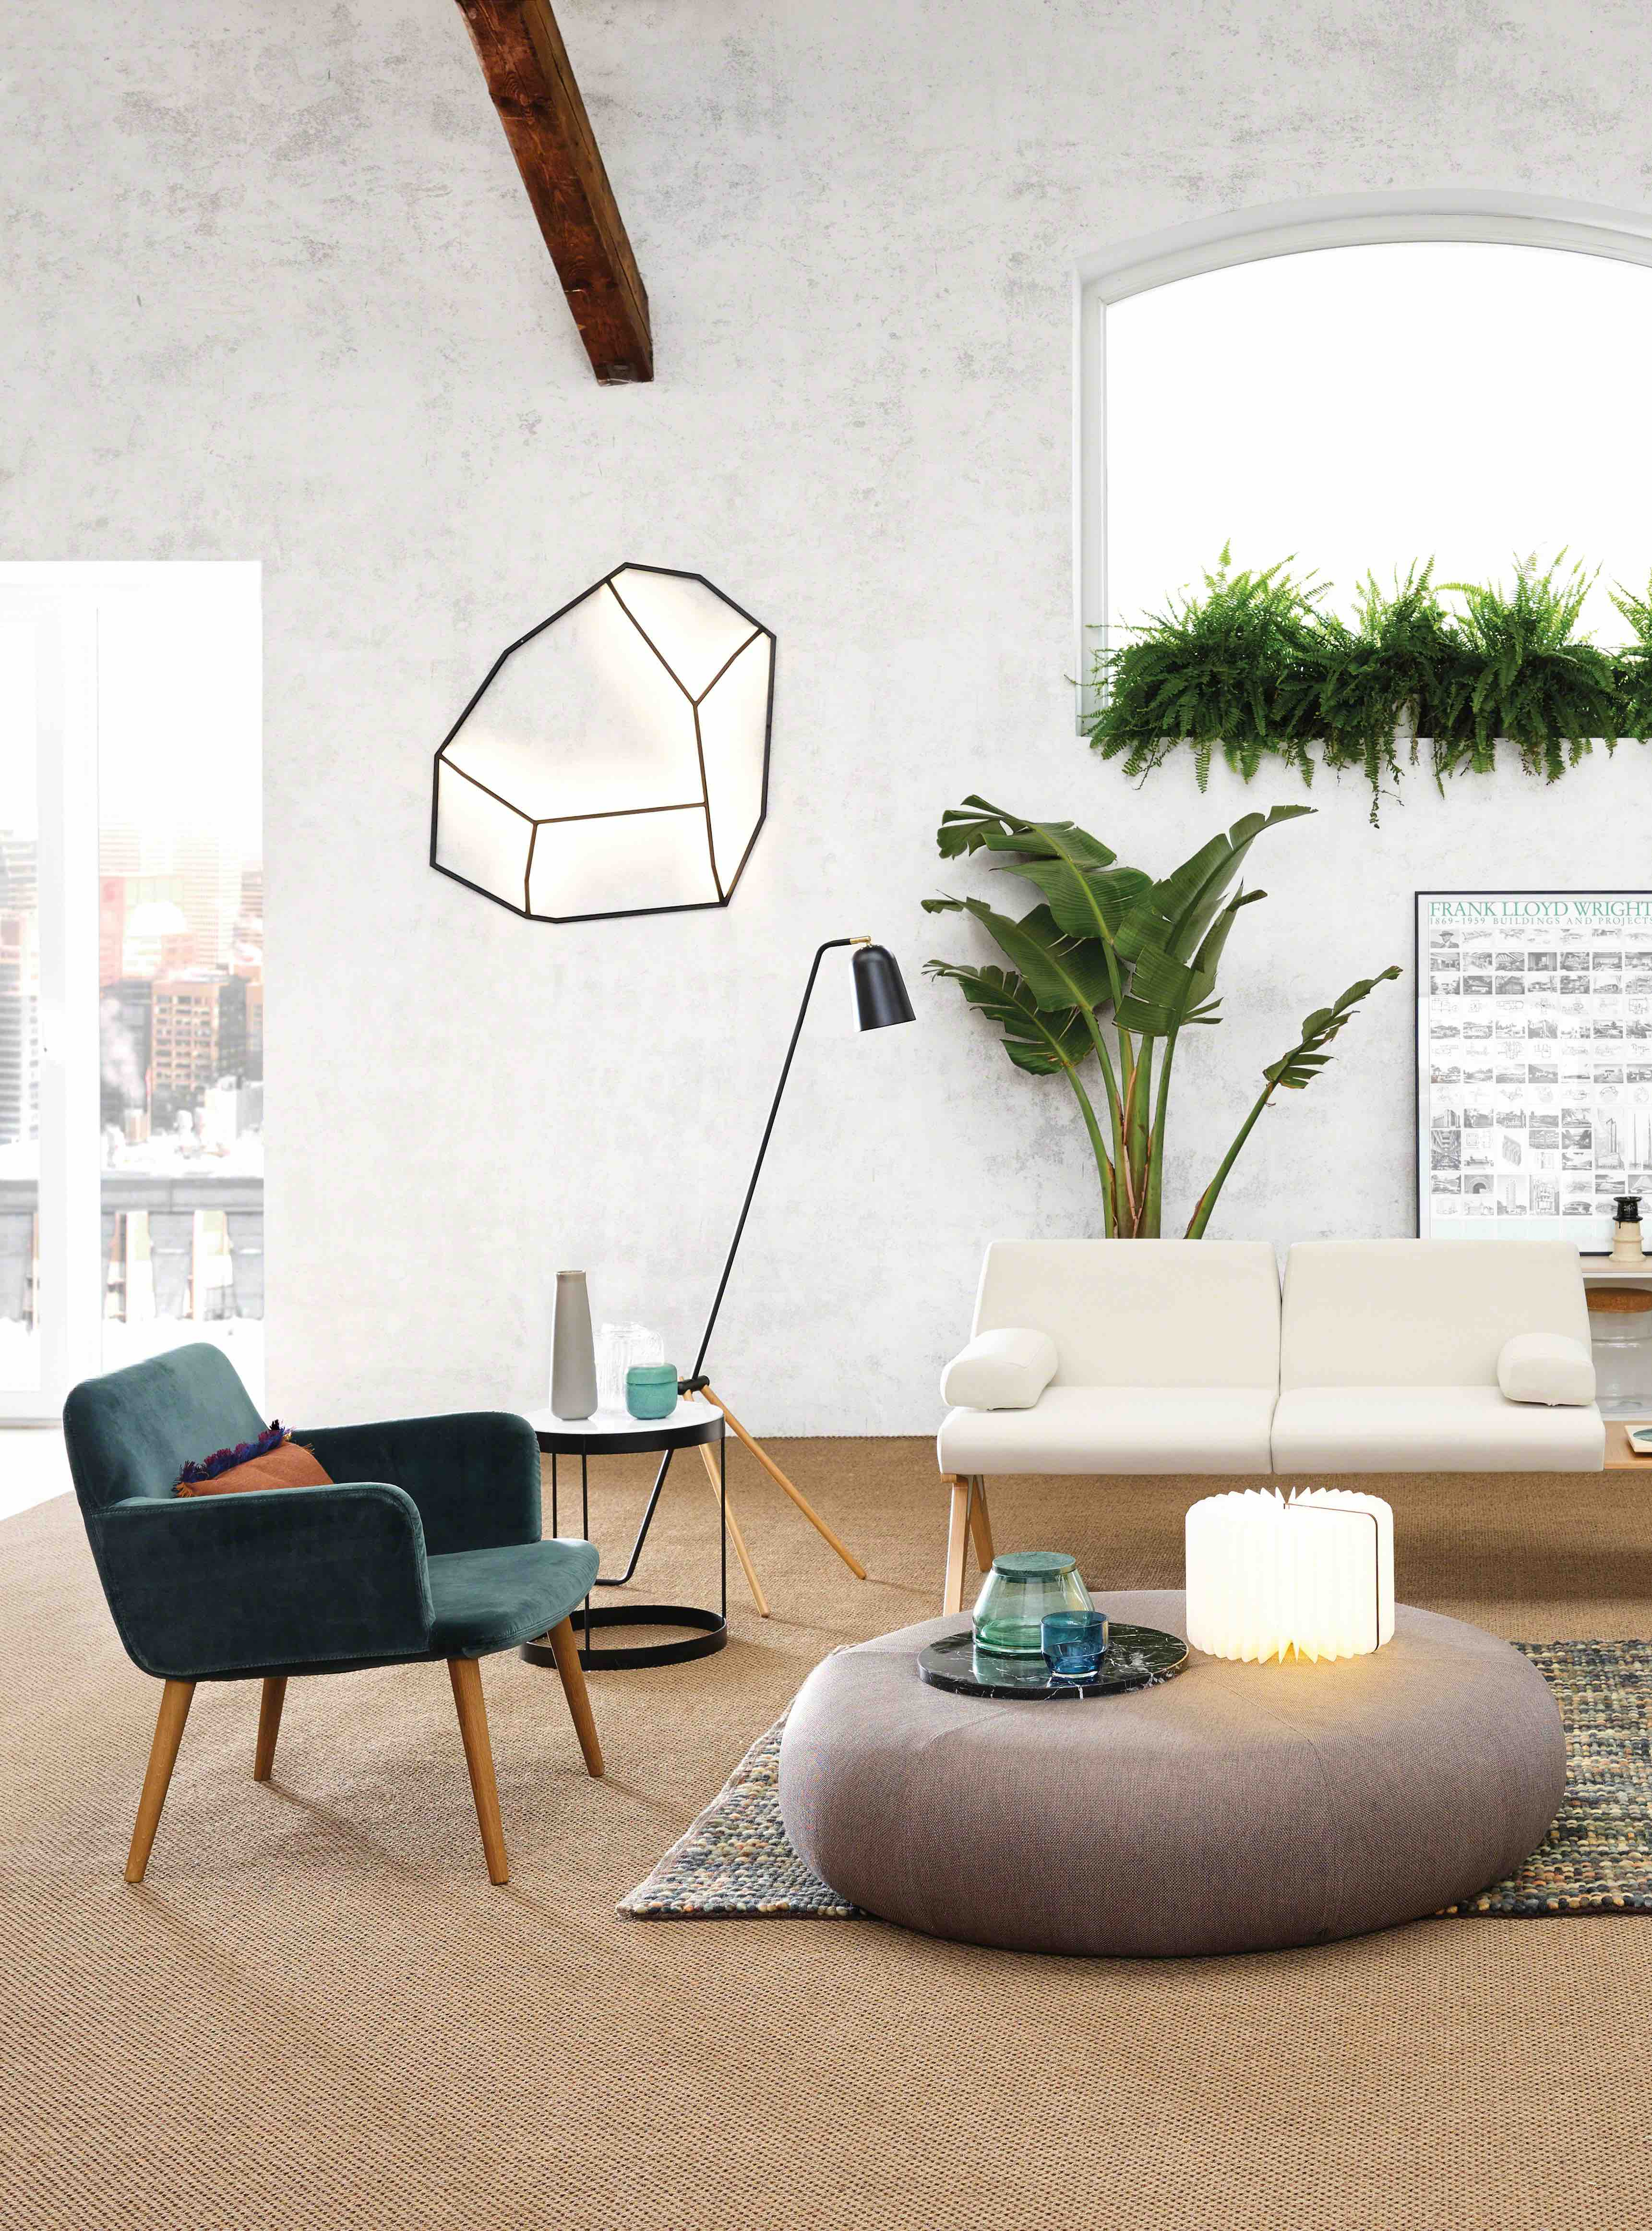 Steelcase Bola Ronda pouf Drum coffee table C3 armchair